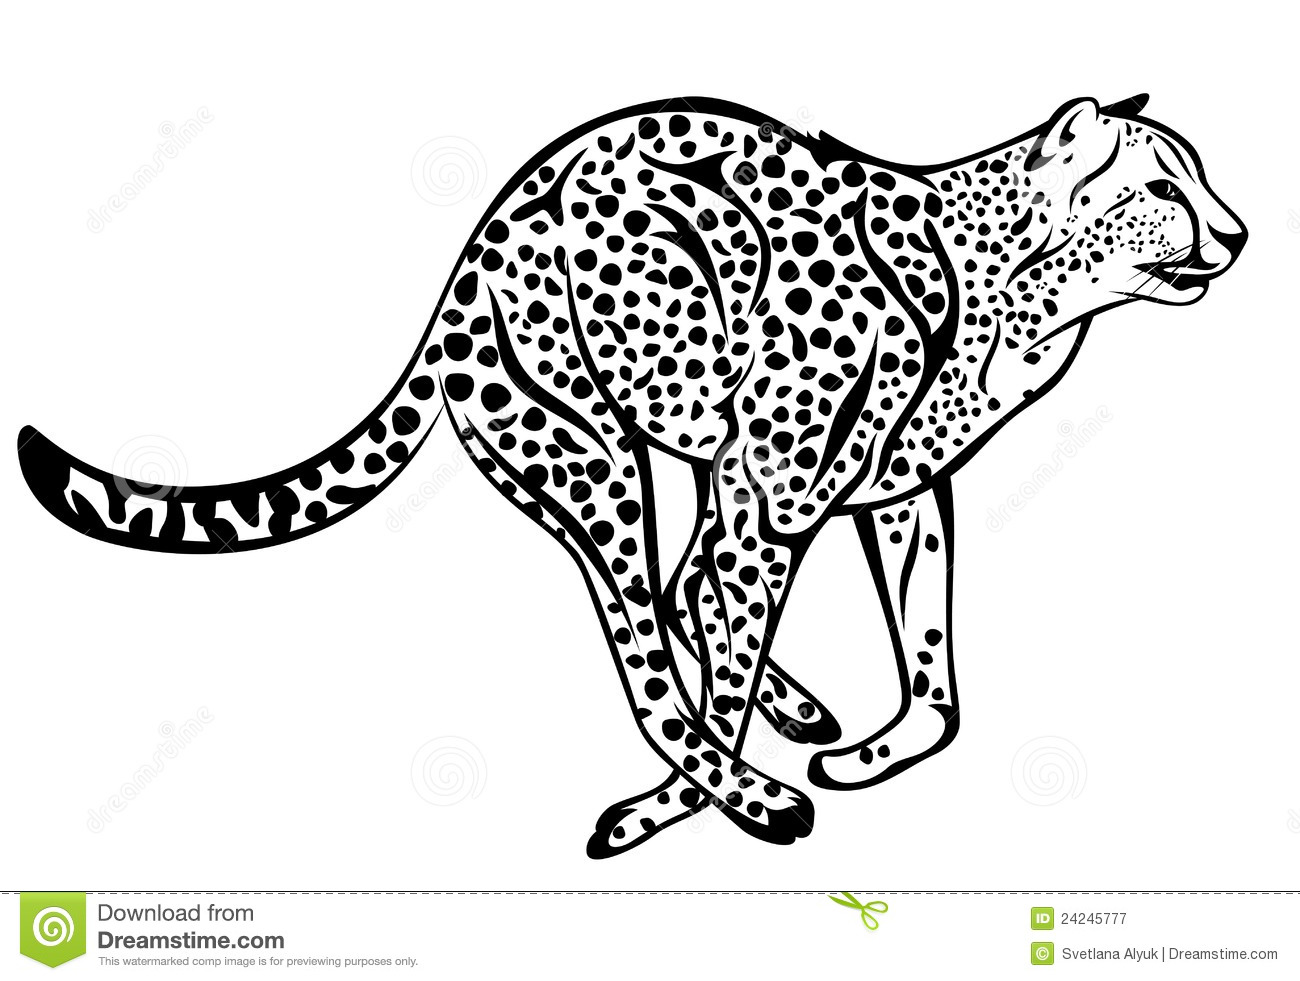 Cheetah Vector Royalty Free Stock Photography - Image: 24245777